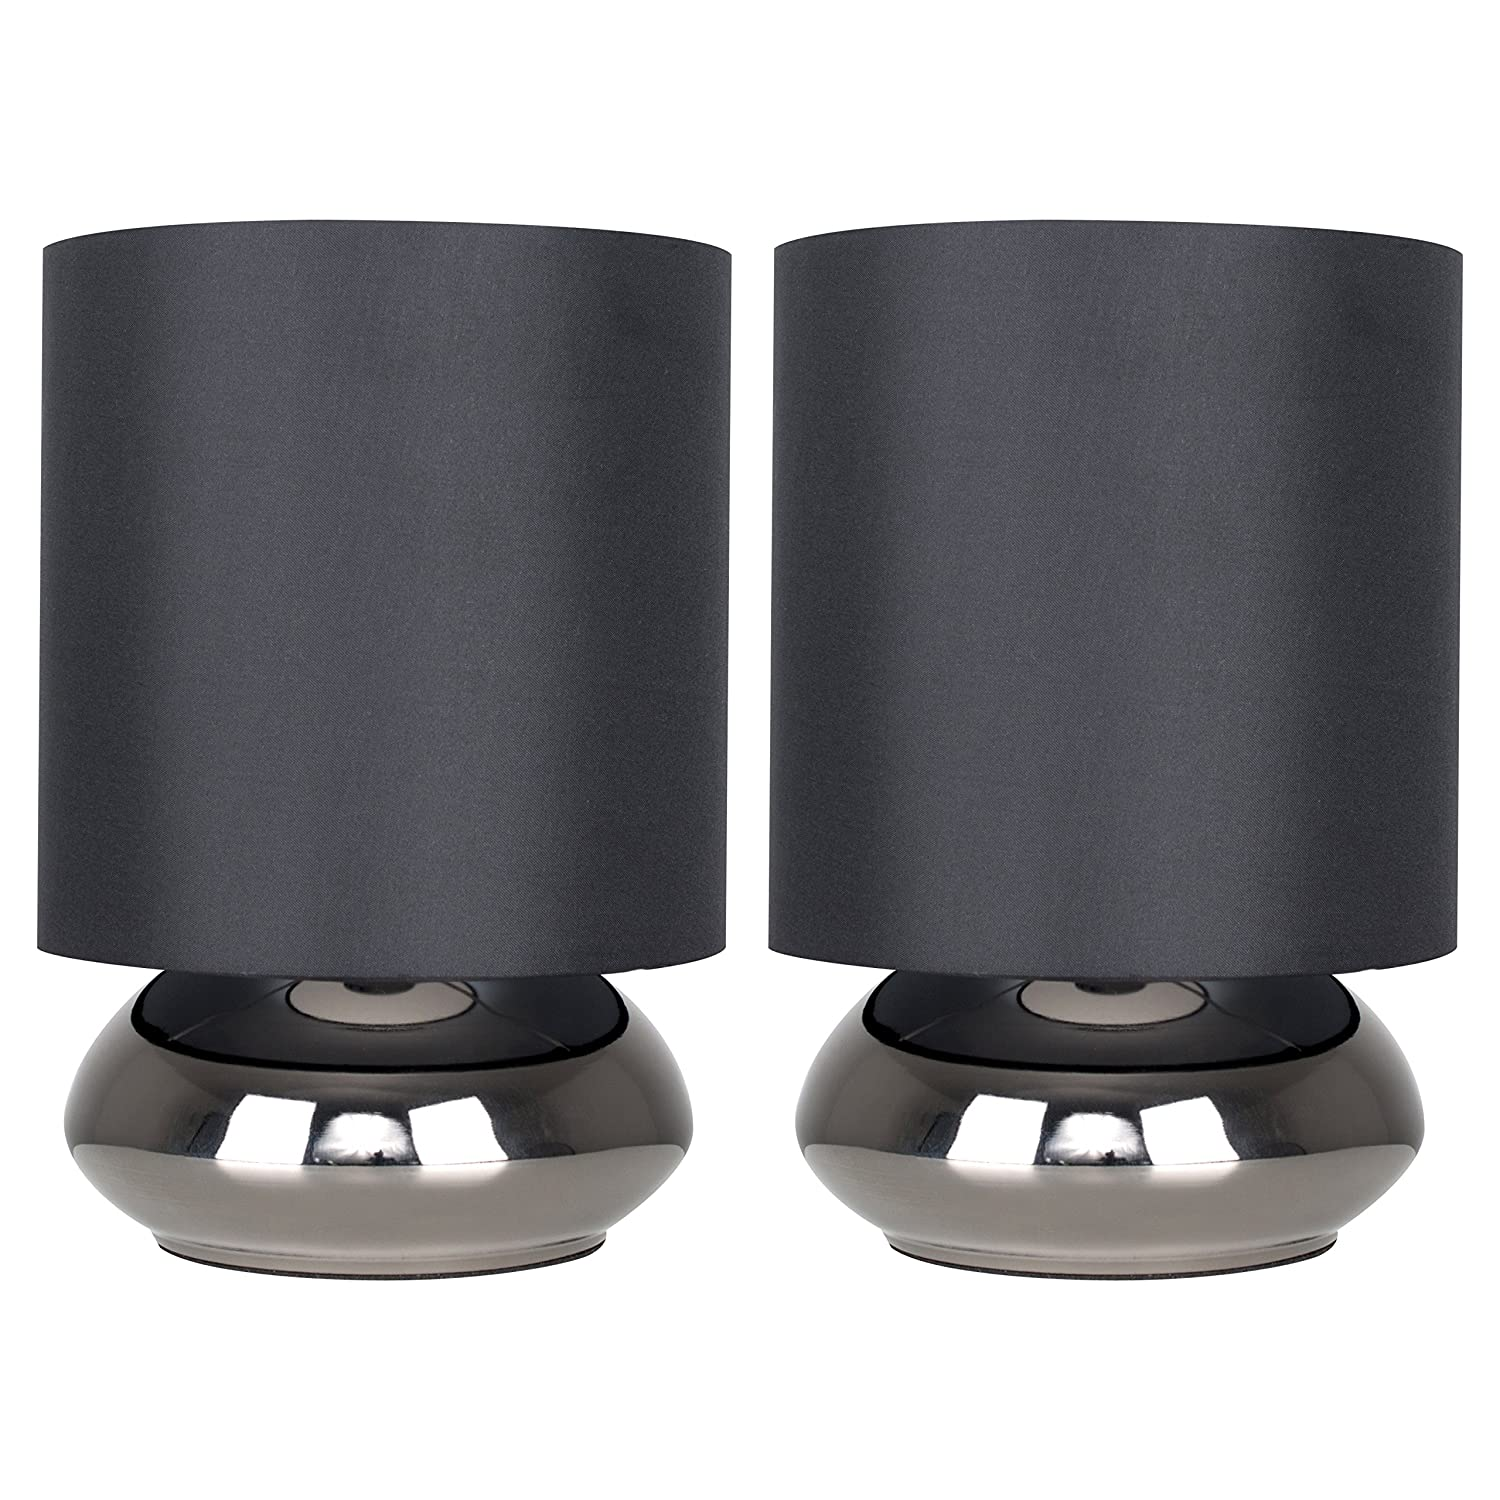 Pair of - Modern Black Chrome Touch Table Lamps with Black Shades - Complete with 5w LED Dimmable Candle Bulbs [3000K Warm White] MiniSun